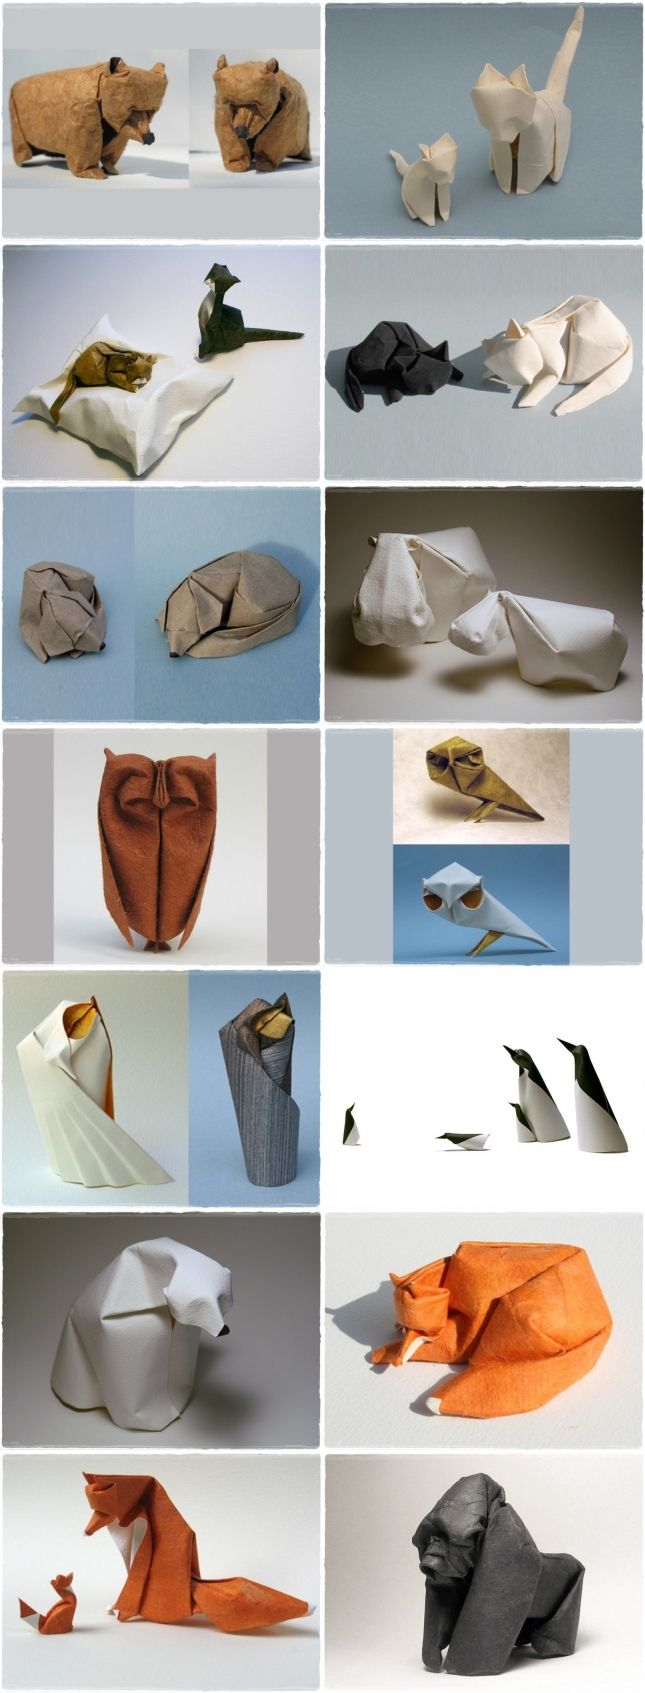 Dinh Truong Giang – OrigamiAnimals